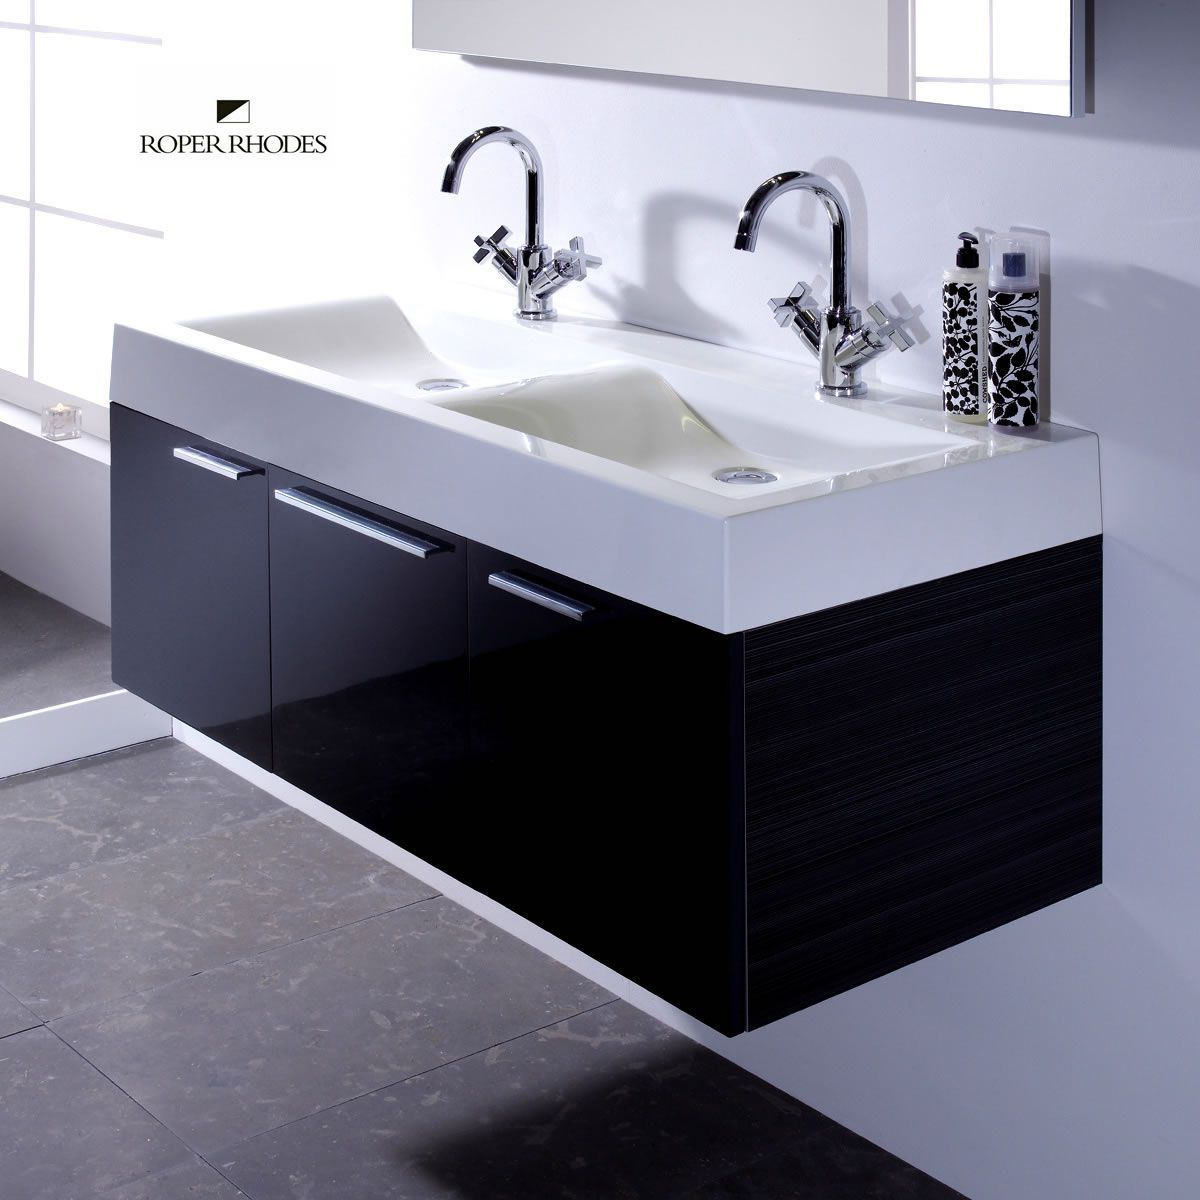 Roper Rhodes Envy 1200mm Wall Hung Unit With Double Basin Sink Vanity Unit Double Basin Vanity Unit Roper Rhodes